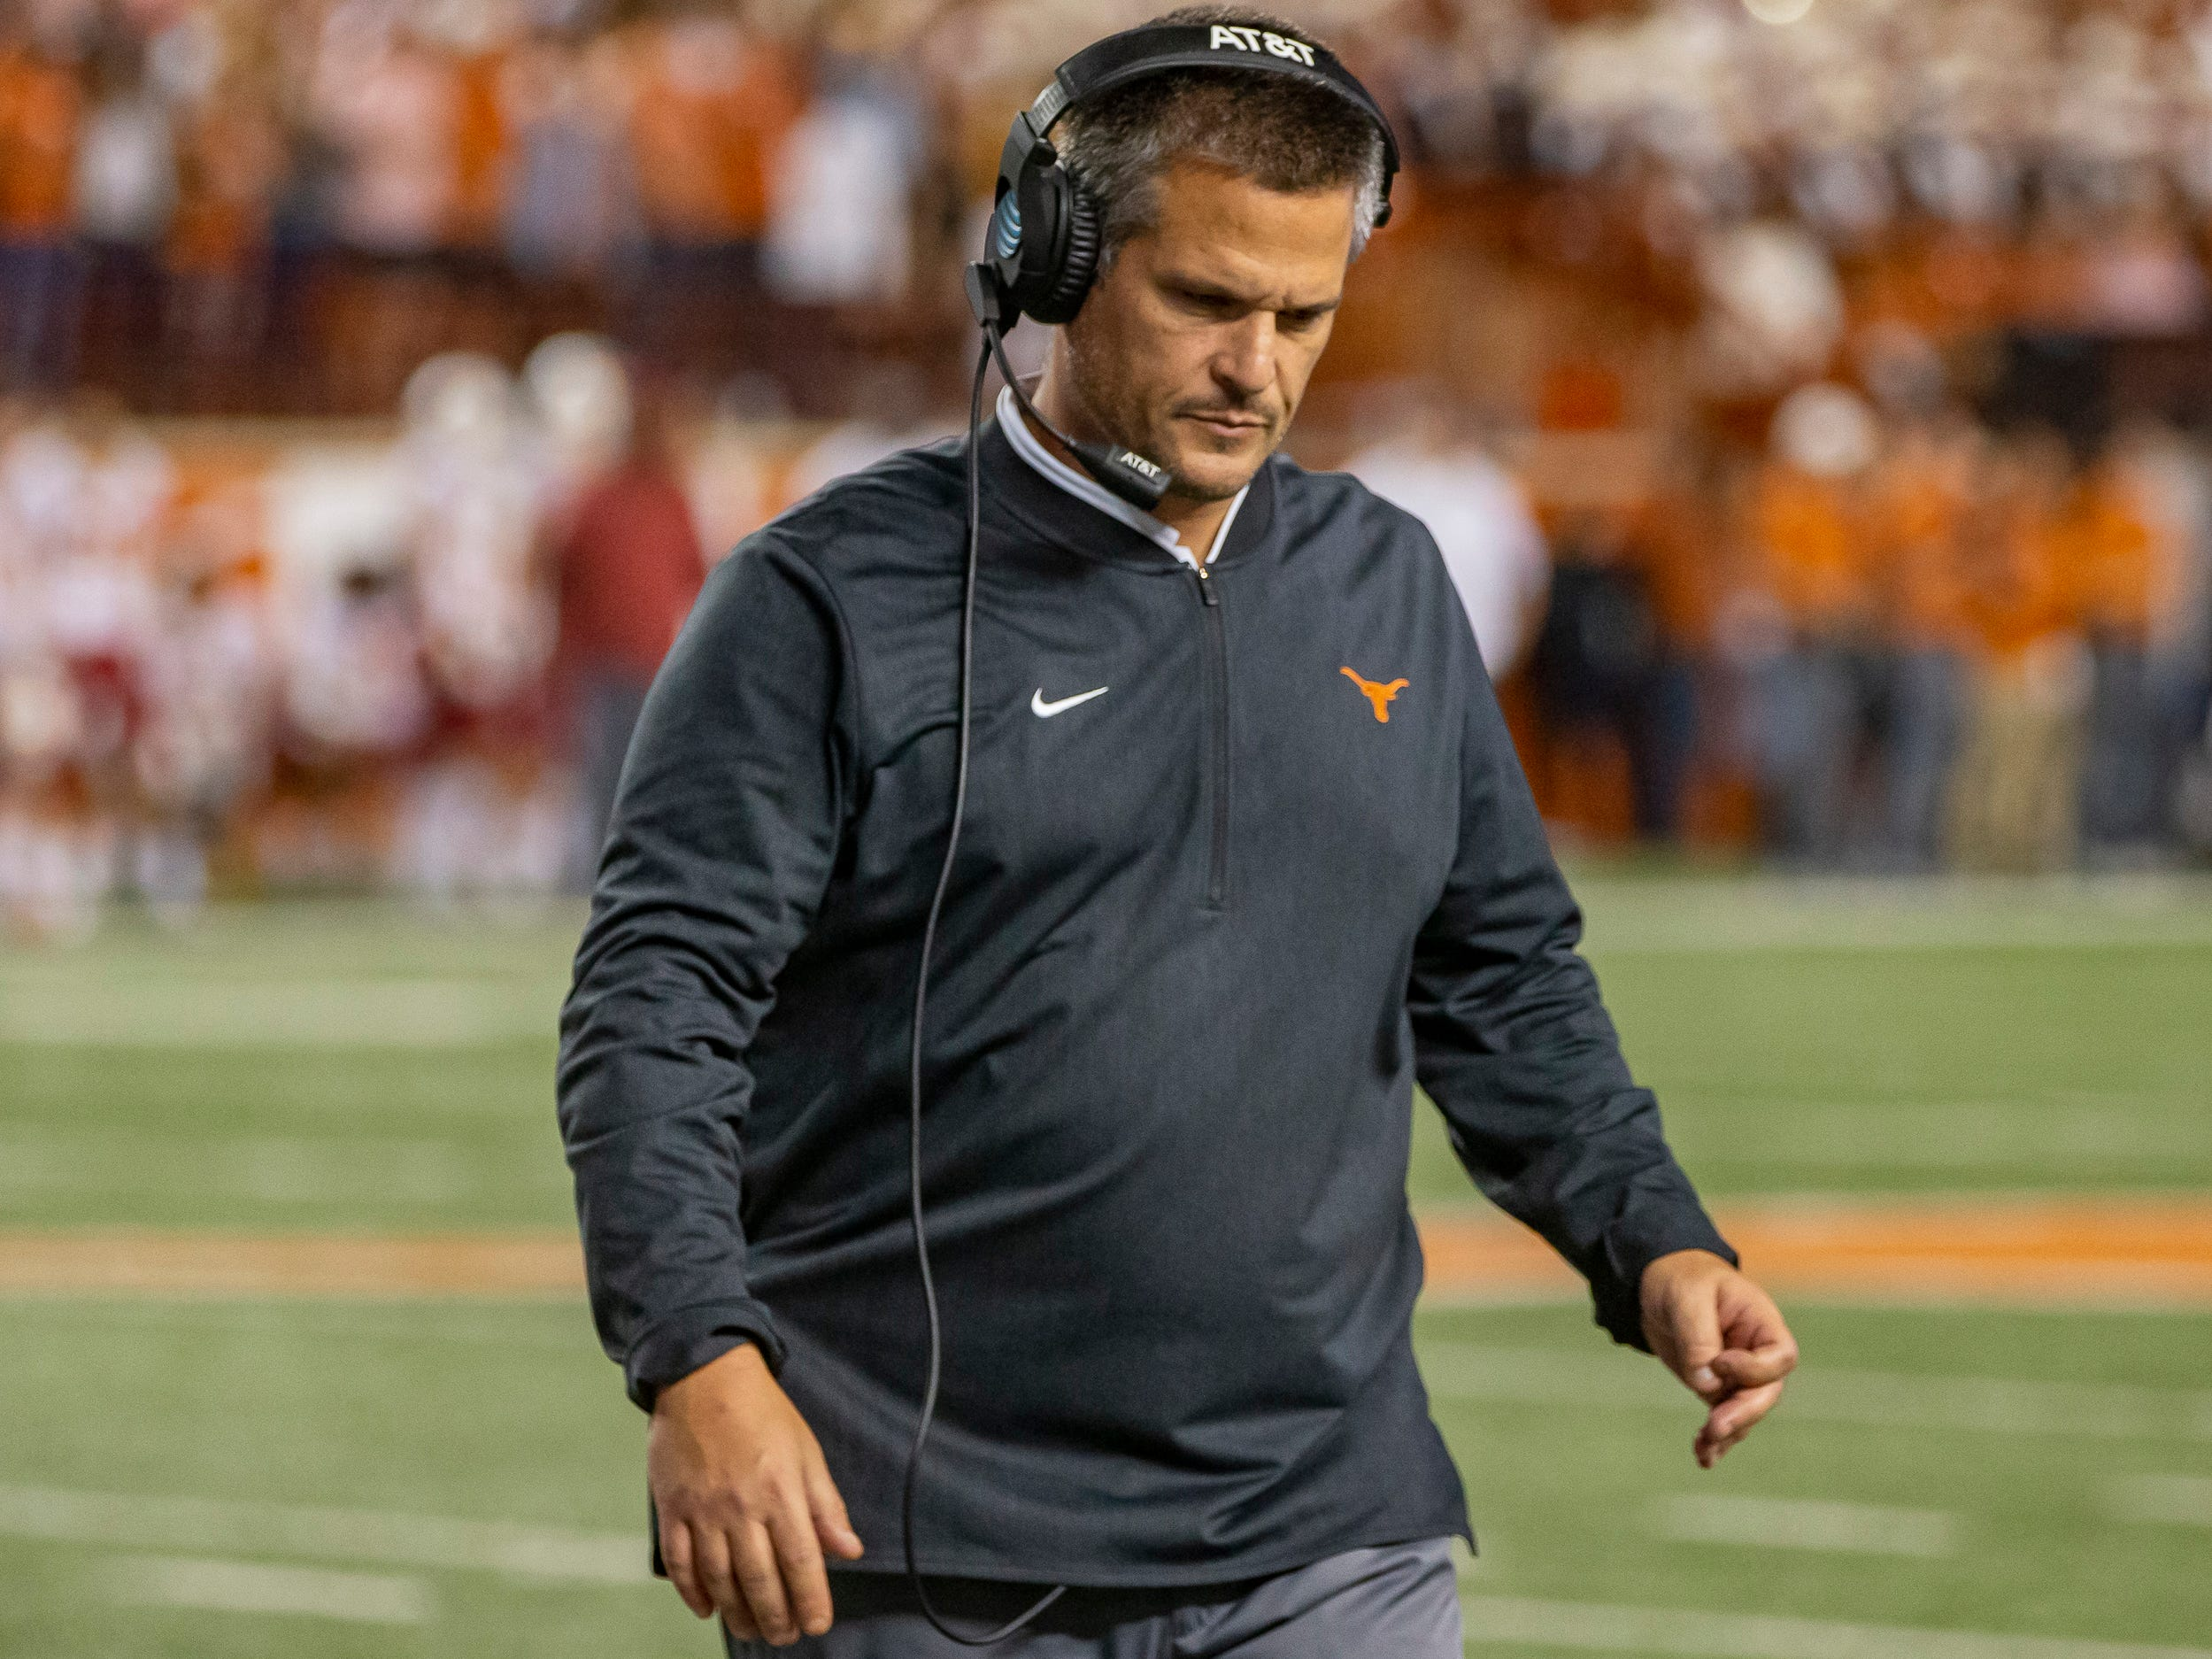 No. 18 (tie) Todd Orlando, Texas defensive coordinator: $1,100,000. Orlando accompanied head coach Tom Herman from Houston after the 2016 season. He was making $526,000 at Houston in 2016 and just under $215,000 in 2014, when he was with Utah State. He is due to make $1.1 million again next season.